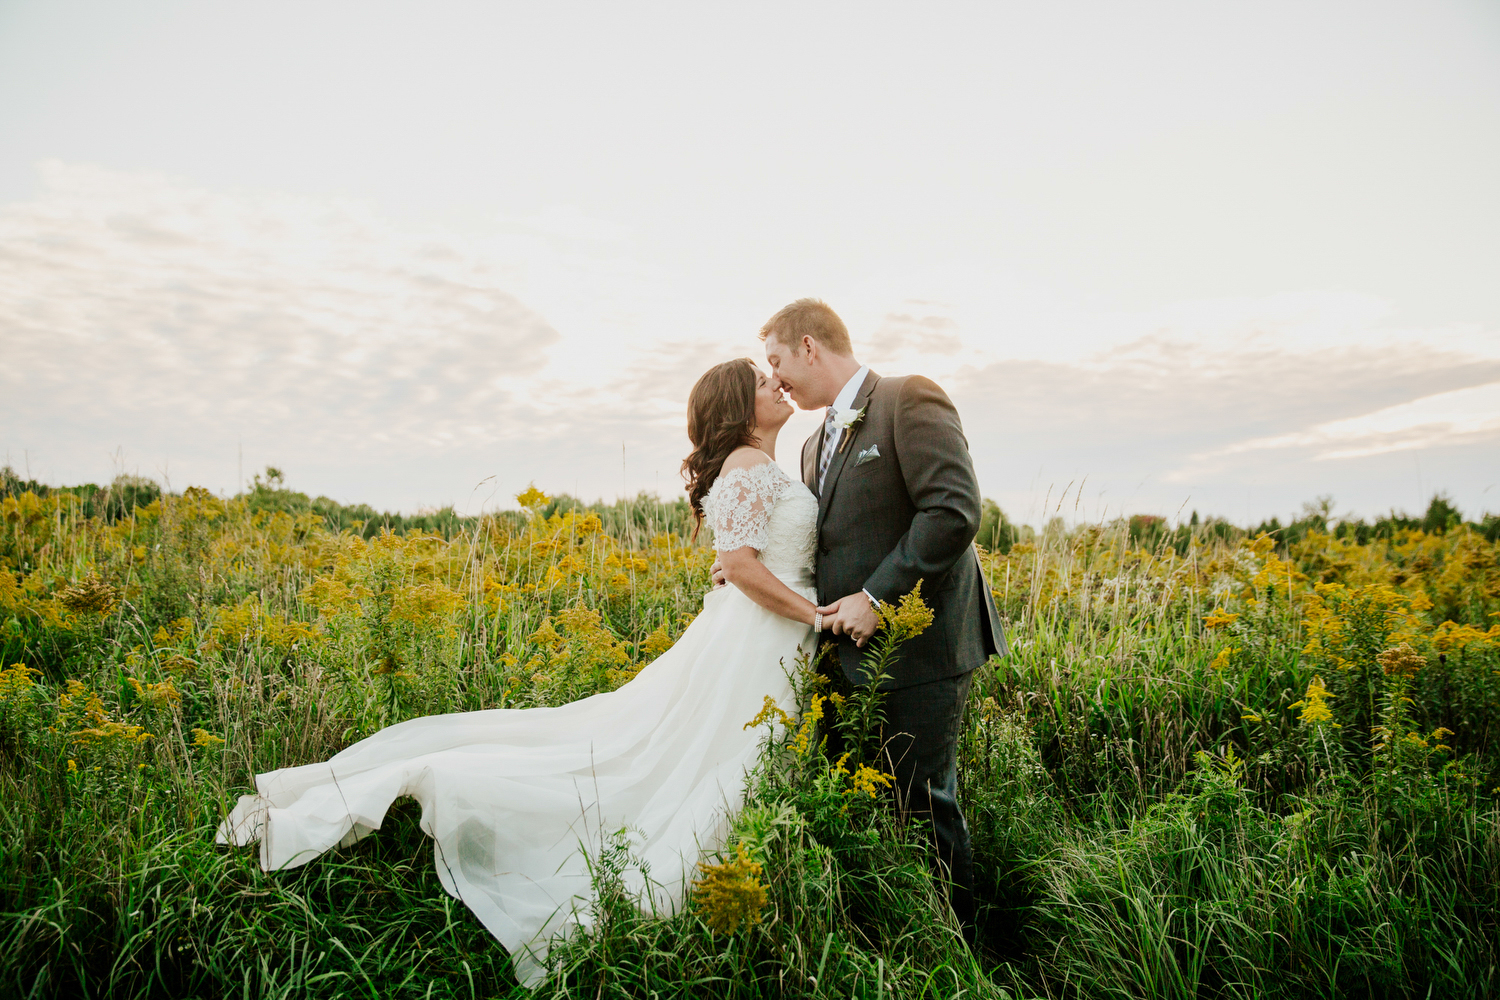 rustic belcroft estates wedding photography in a field